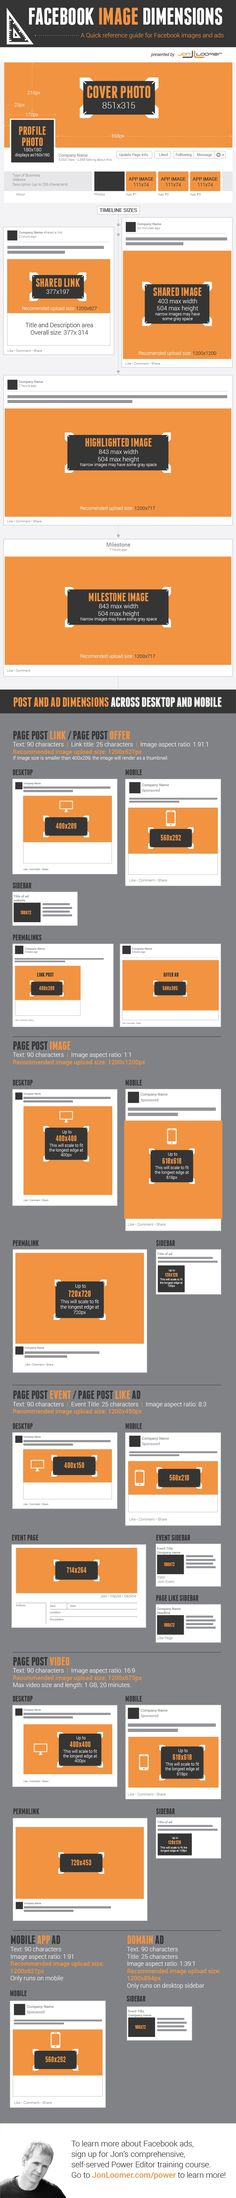 Facebook new images format [infographics] courtesy #wired